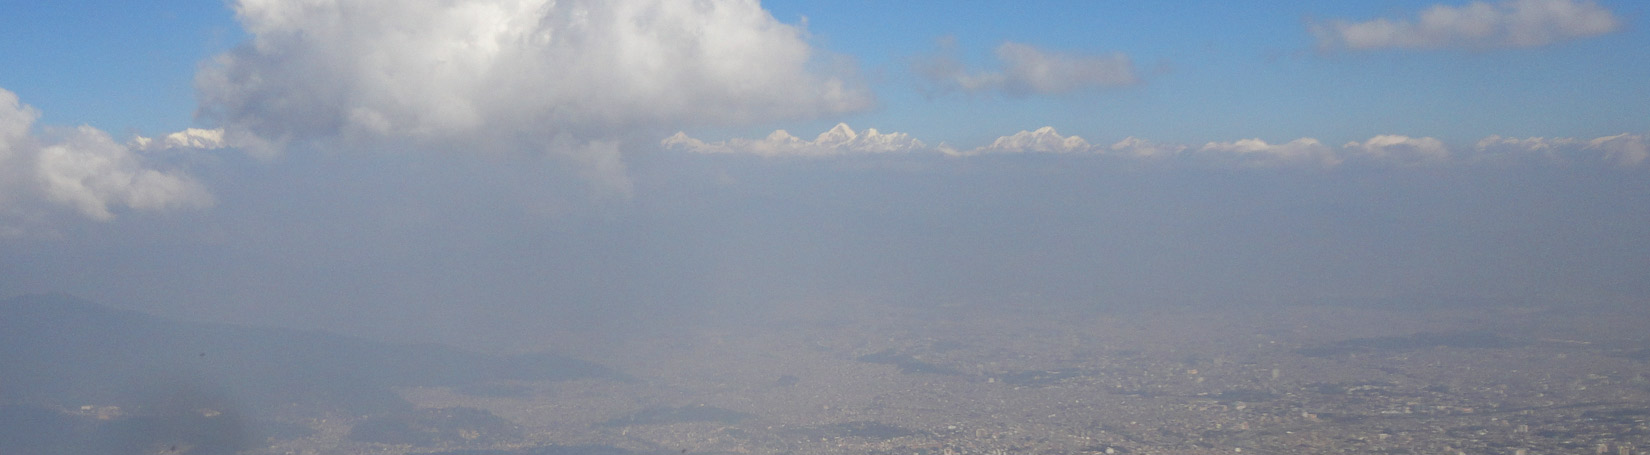 Kathmandu Valley, View From Champadevi Hill